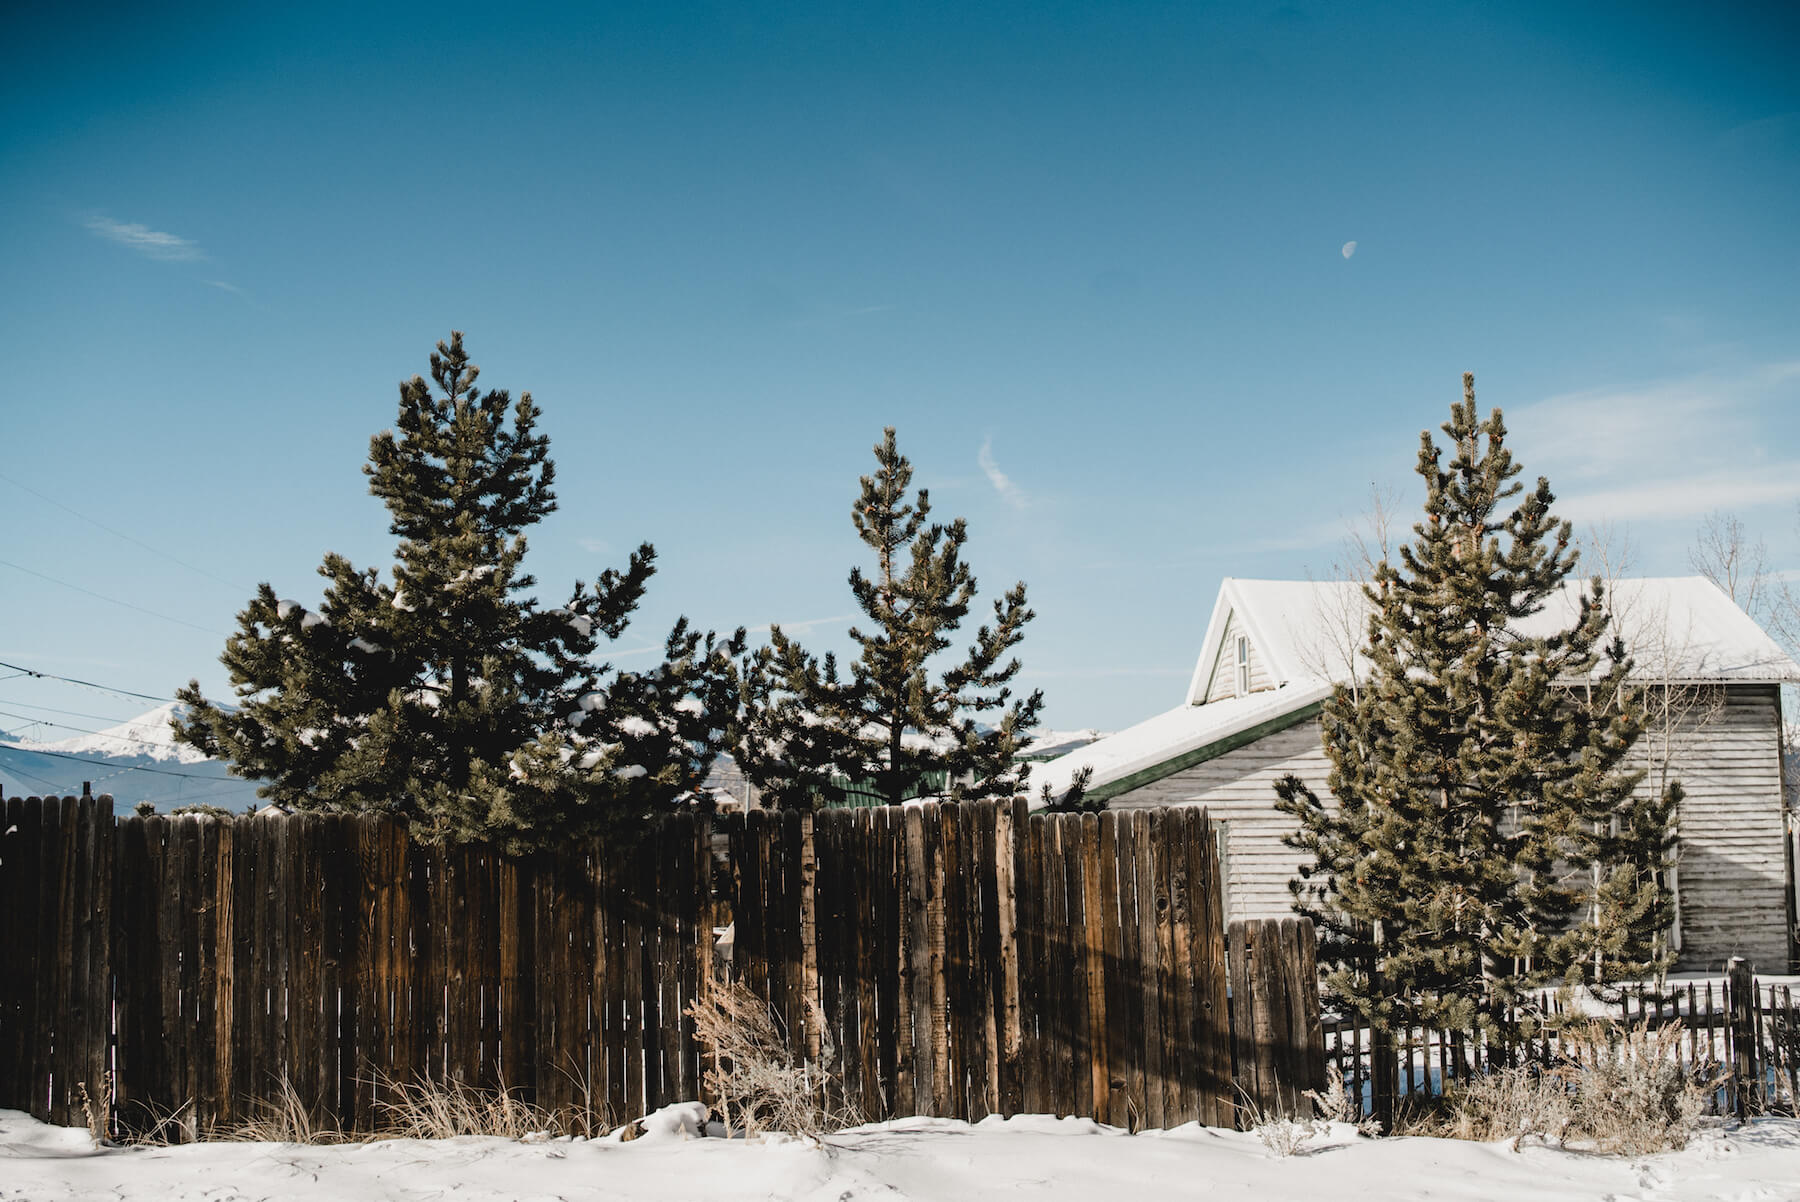 engle-olson-photography-leadville-christmas-3.jpg